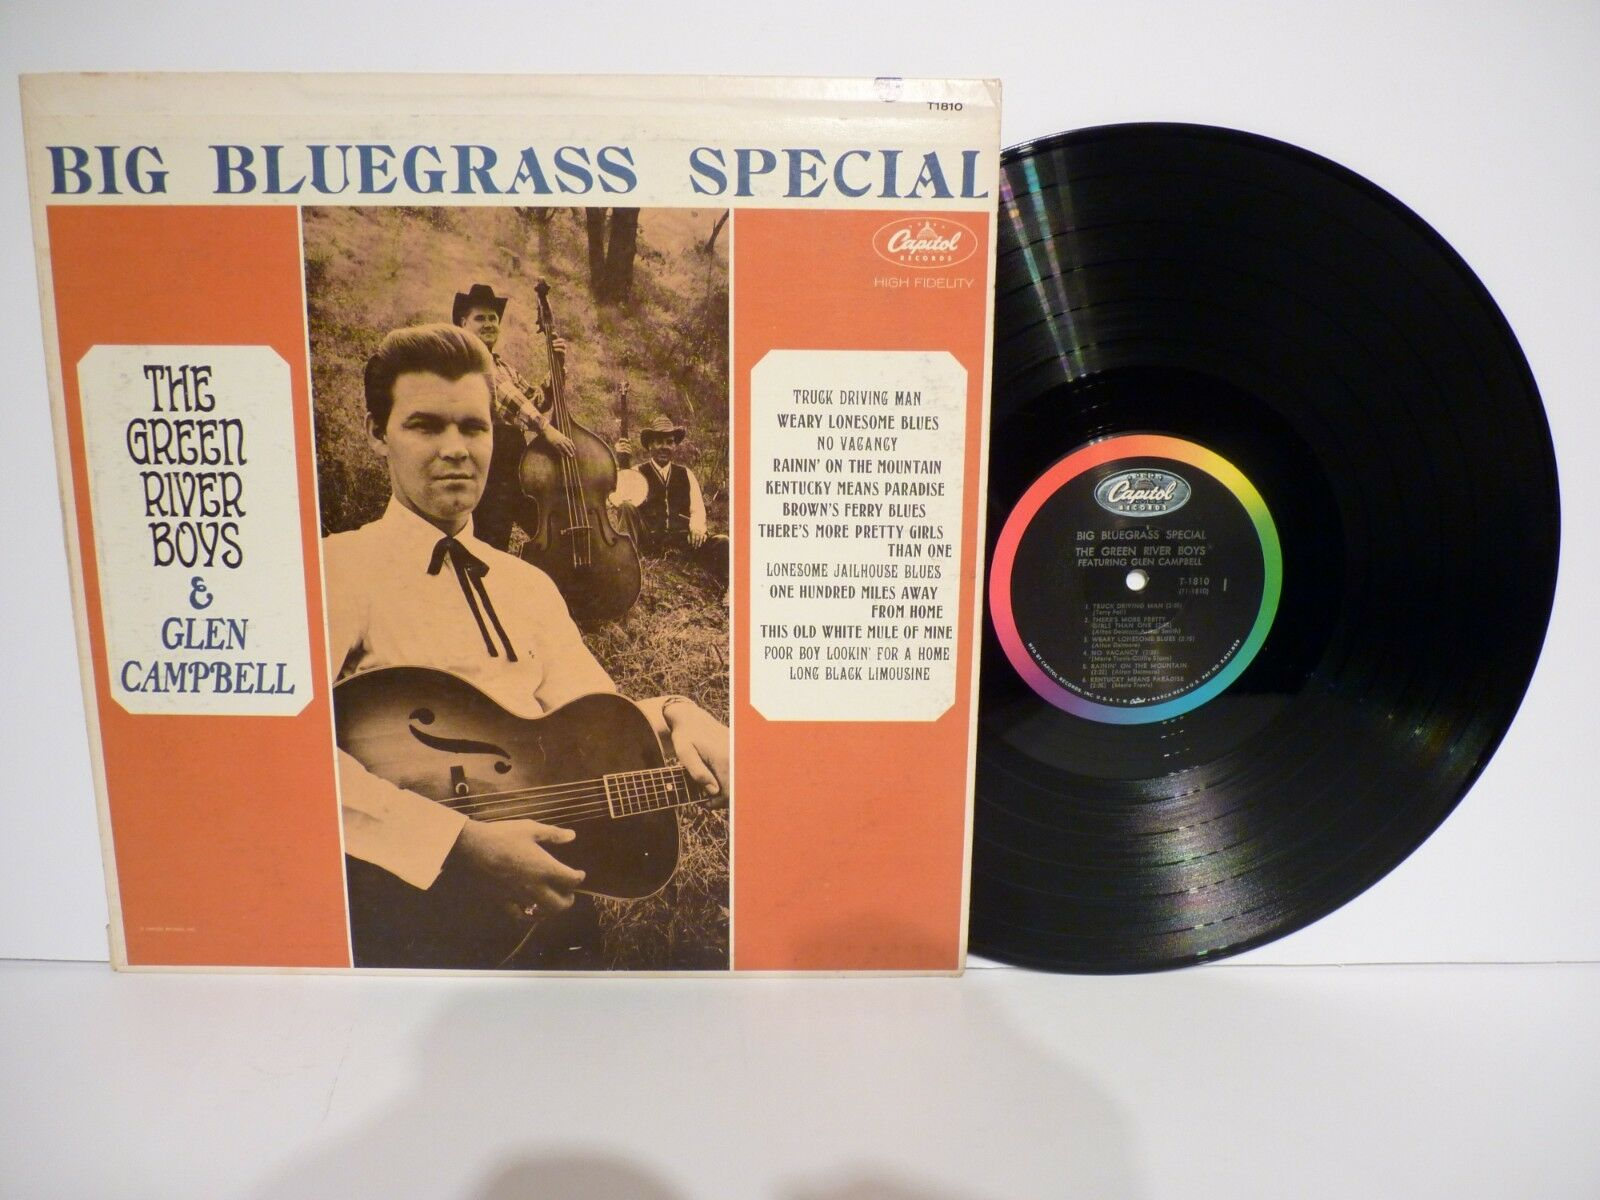 the-green-river-boys-glen-campbell-big-bluegrass-special-1962-lp-mono-record_44727730.jpg